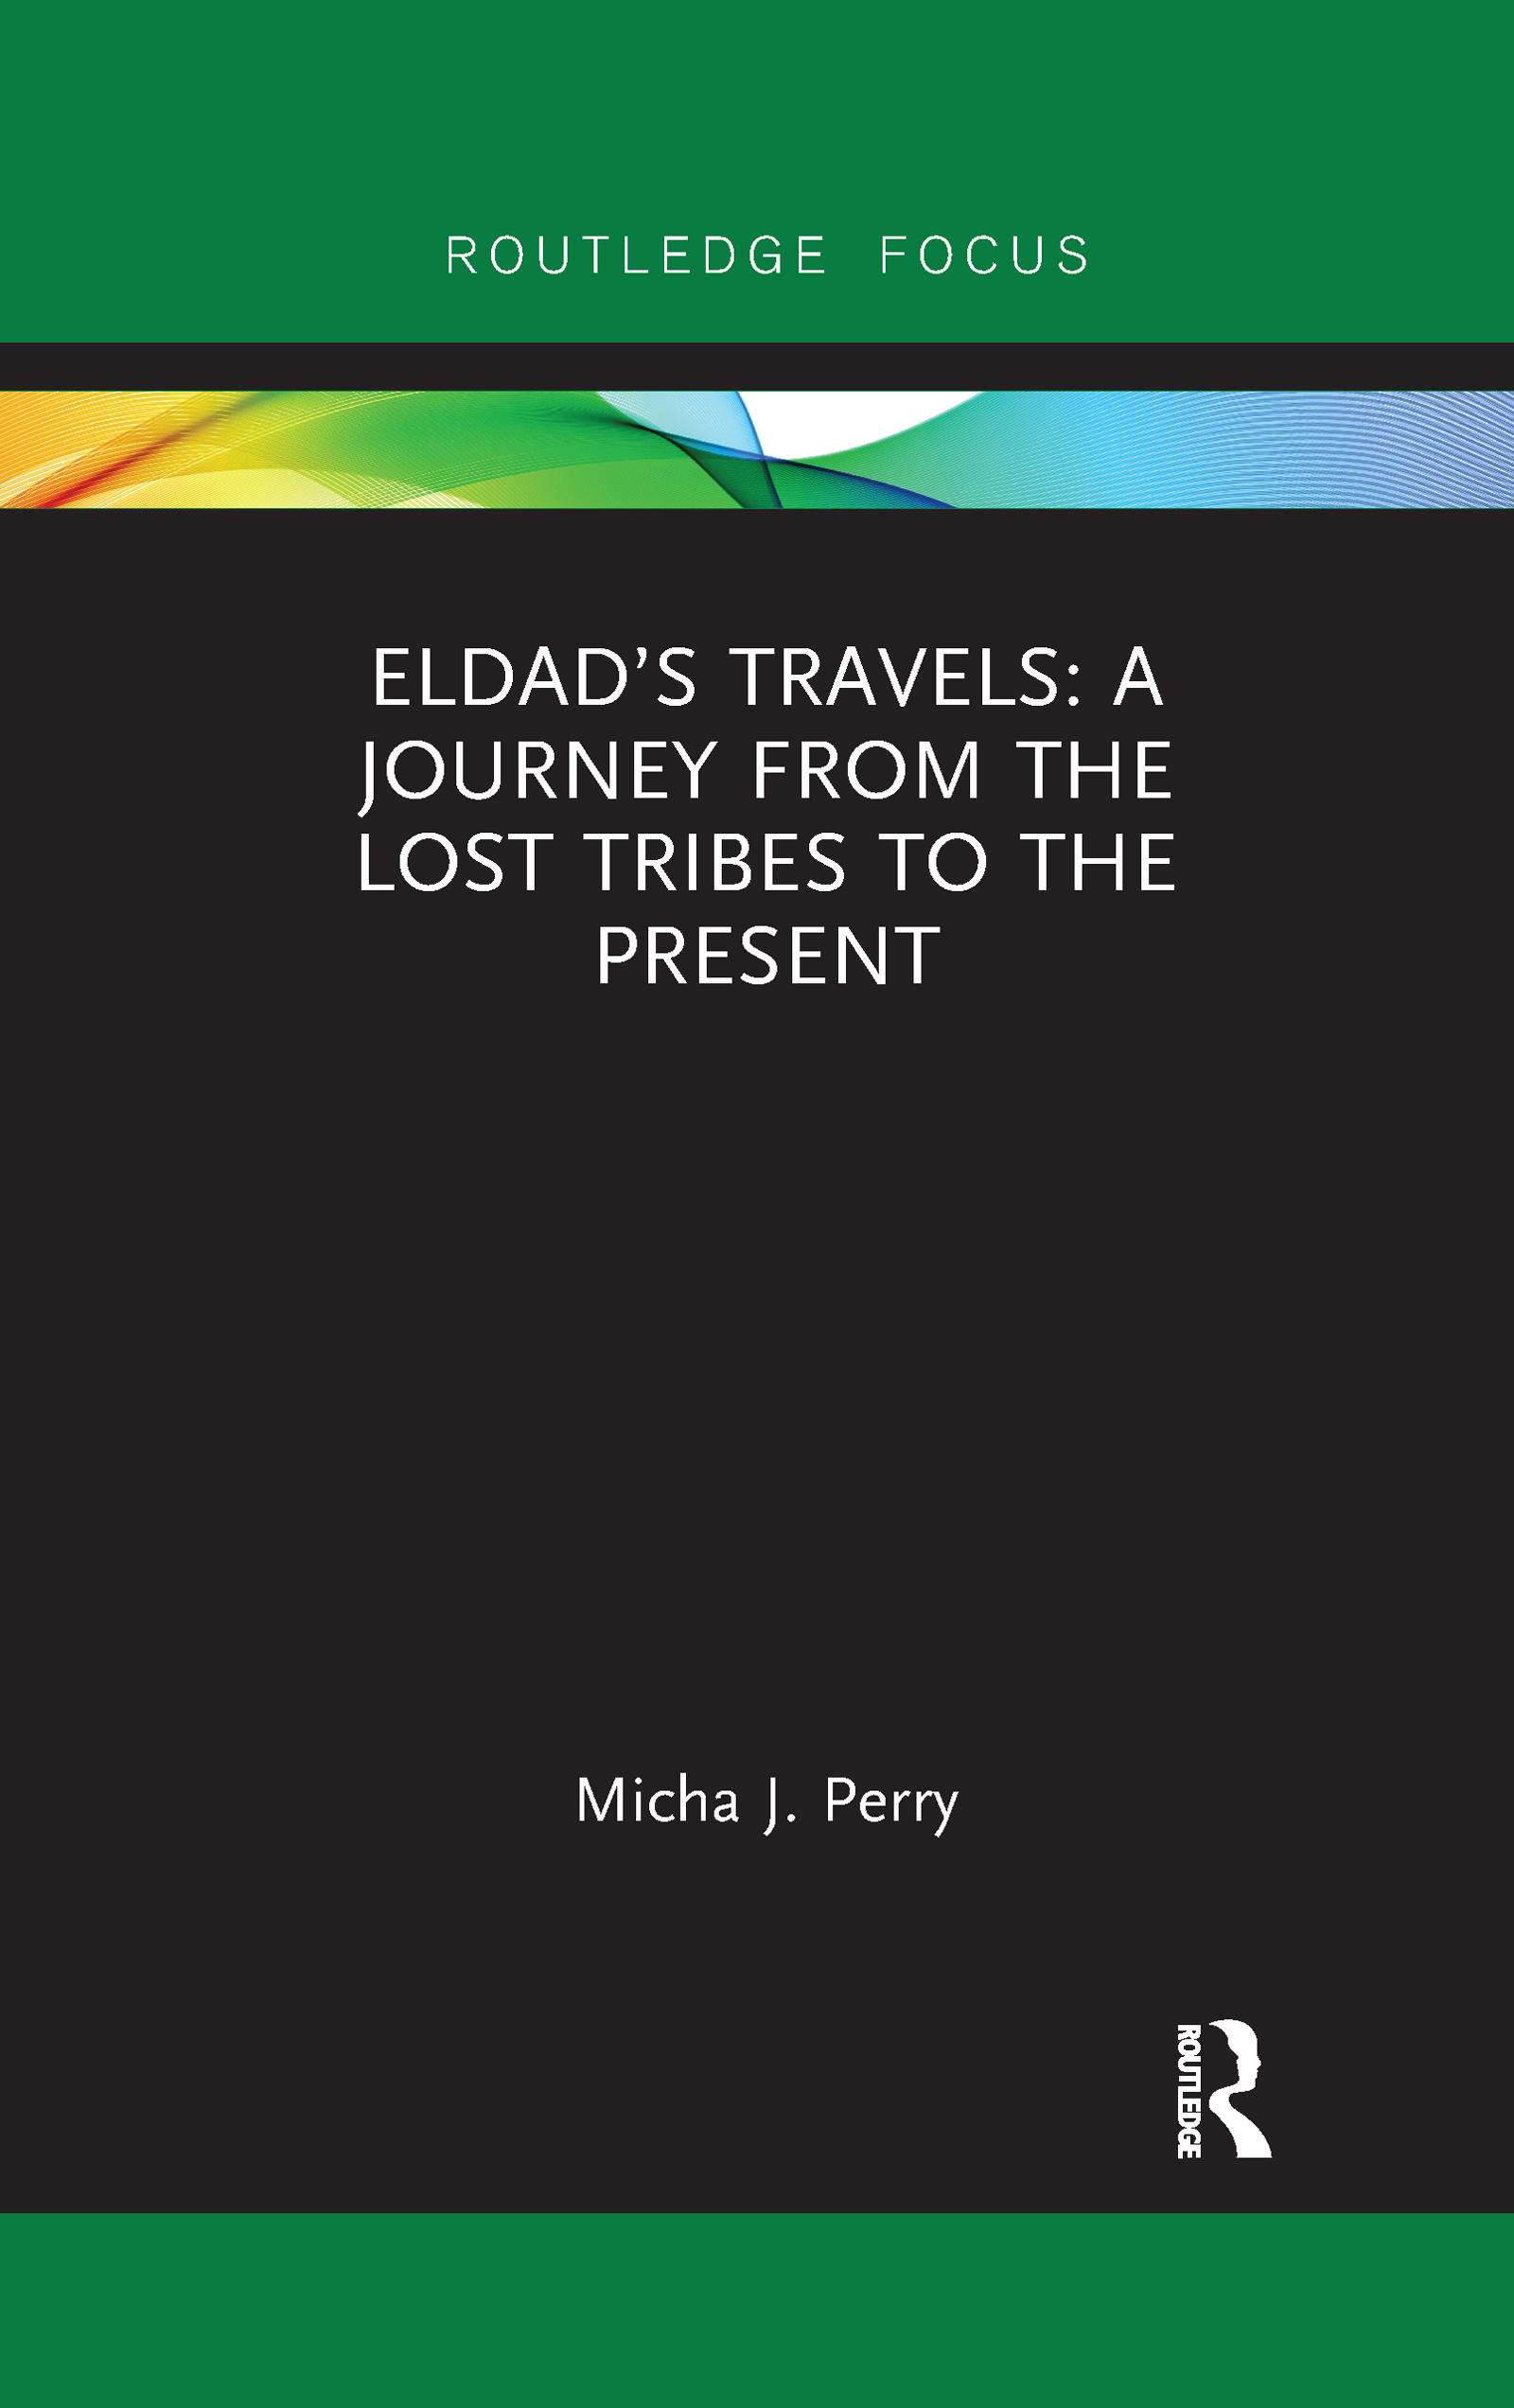 Eldad's Travels: A Journey from the Lost Tribes to the Present